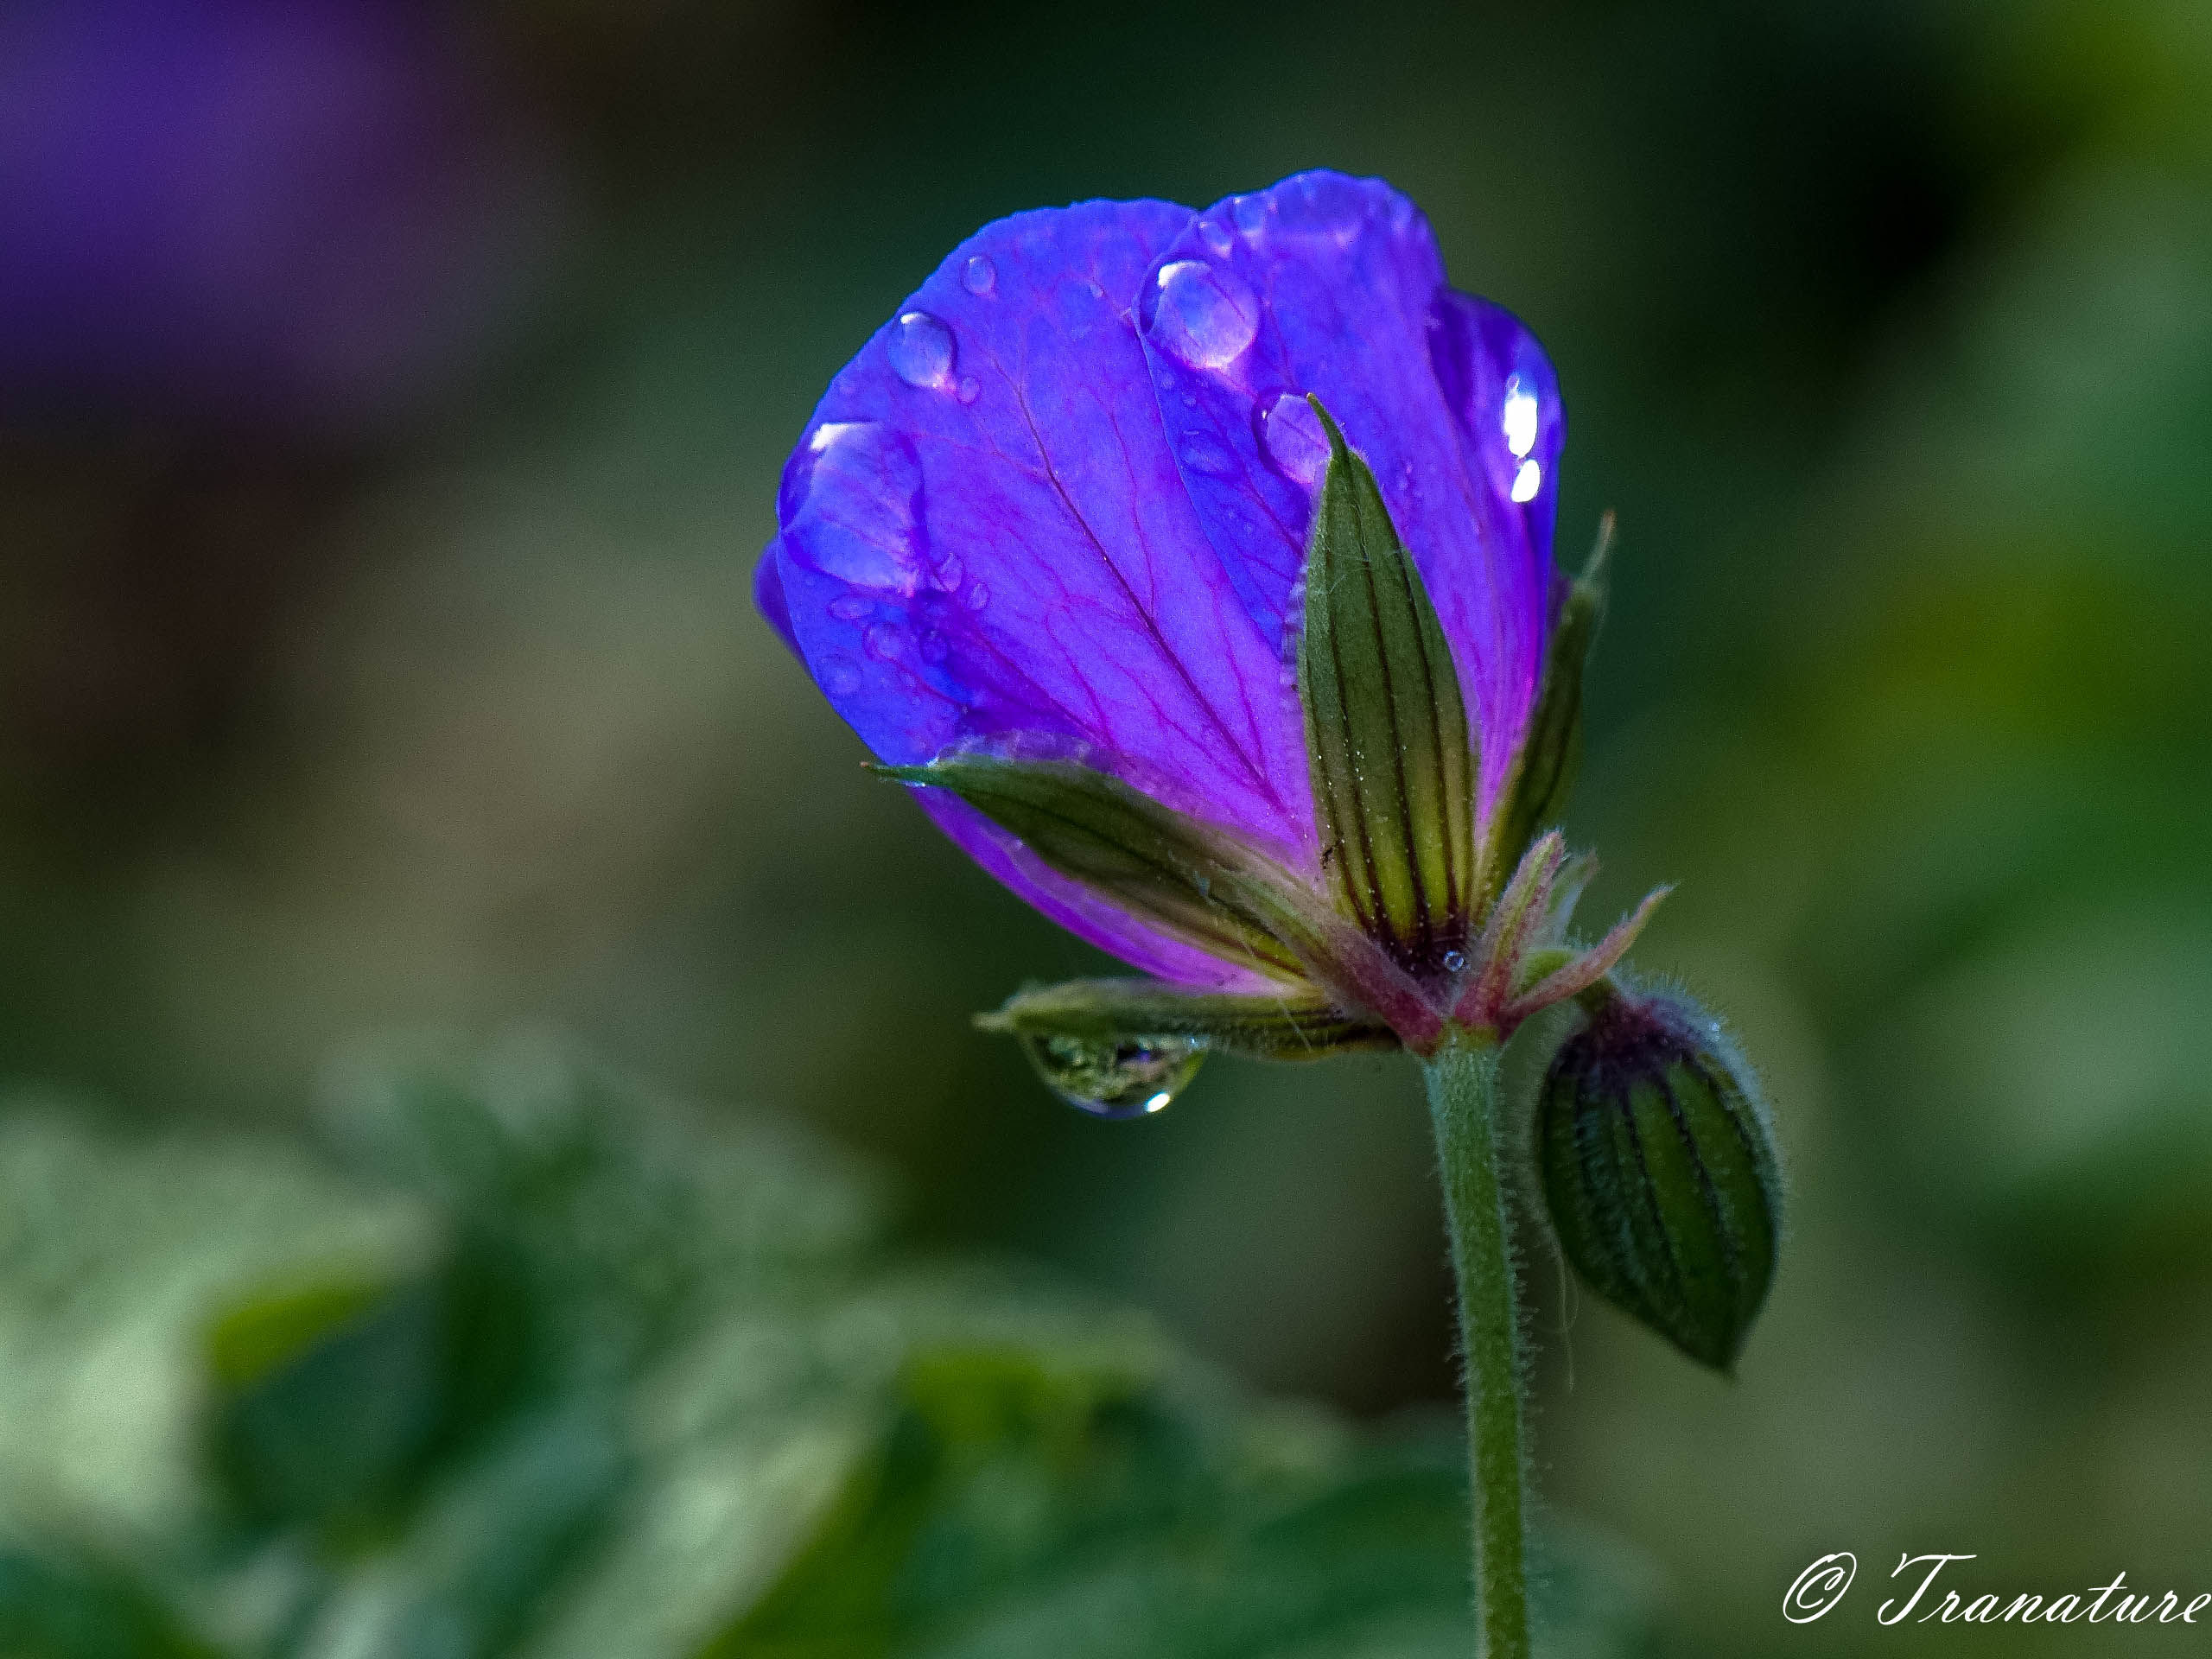 macro shot of a blue geranium in bud with raindrops